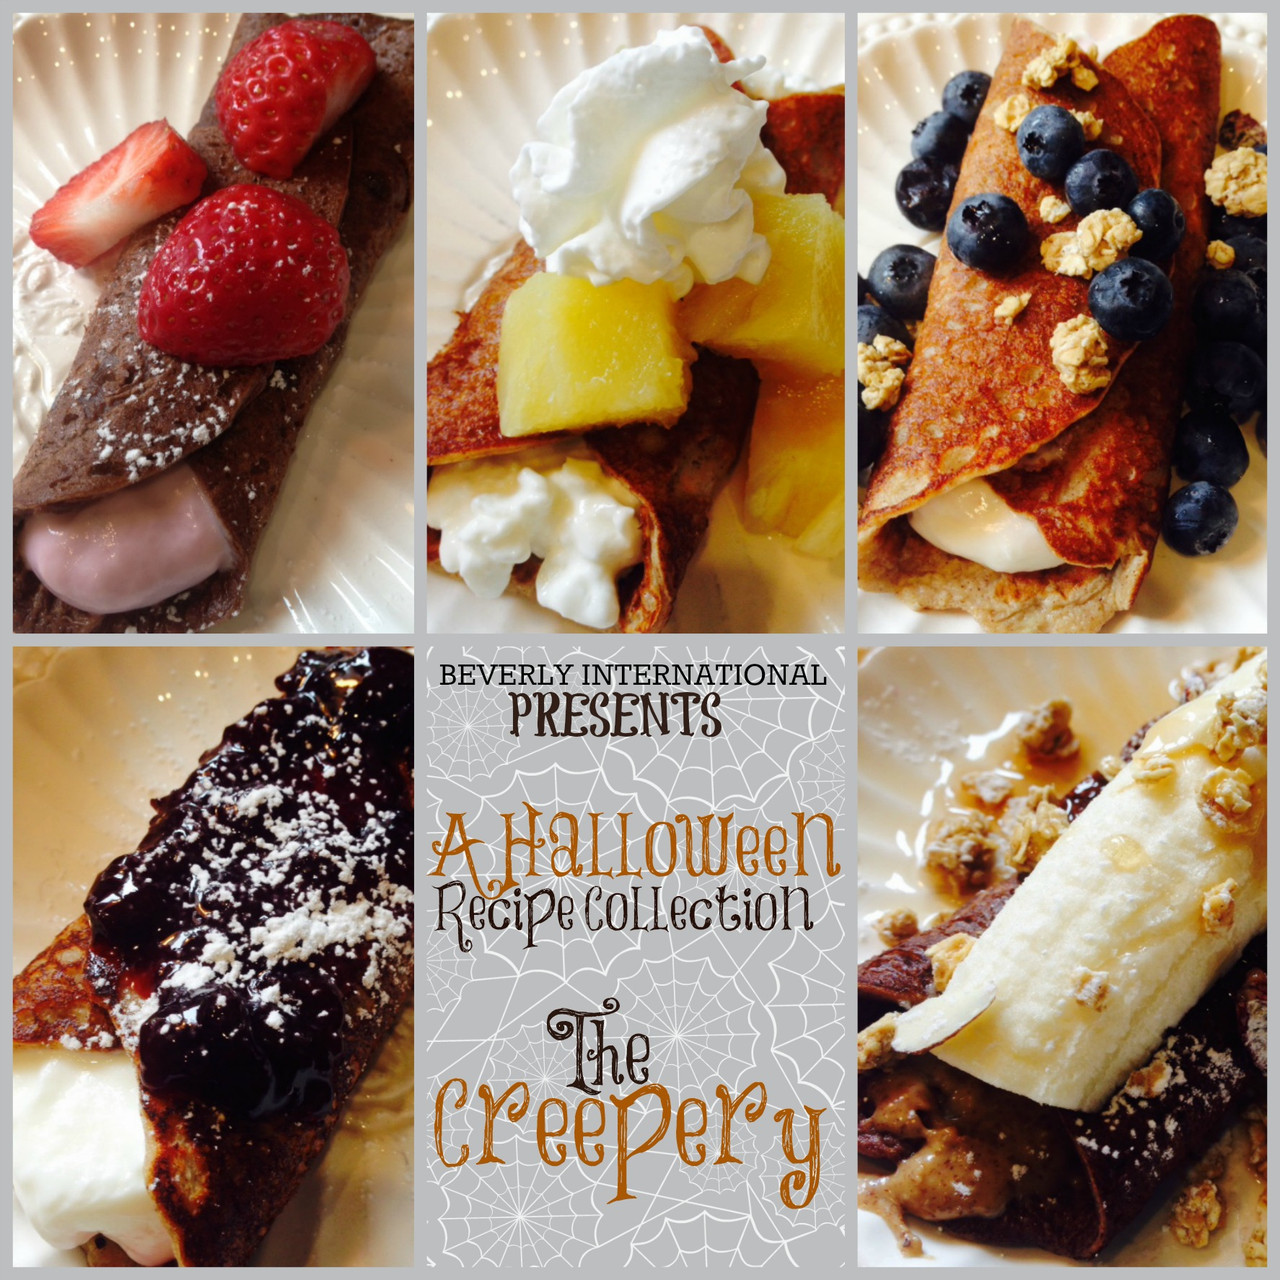 The Creepery - A Halloween Recipe Collection